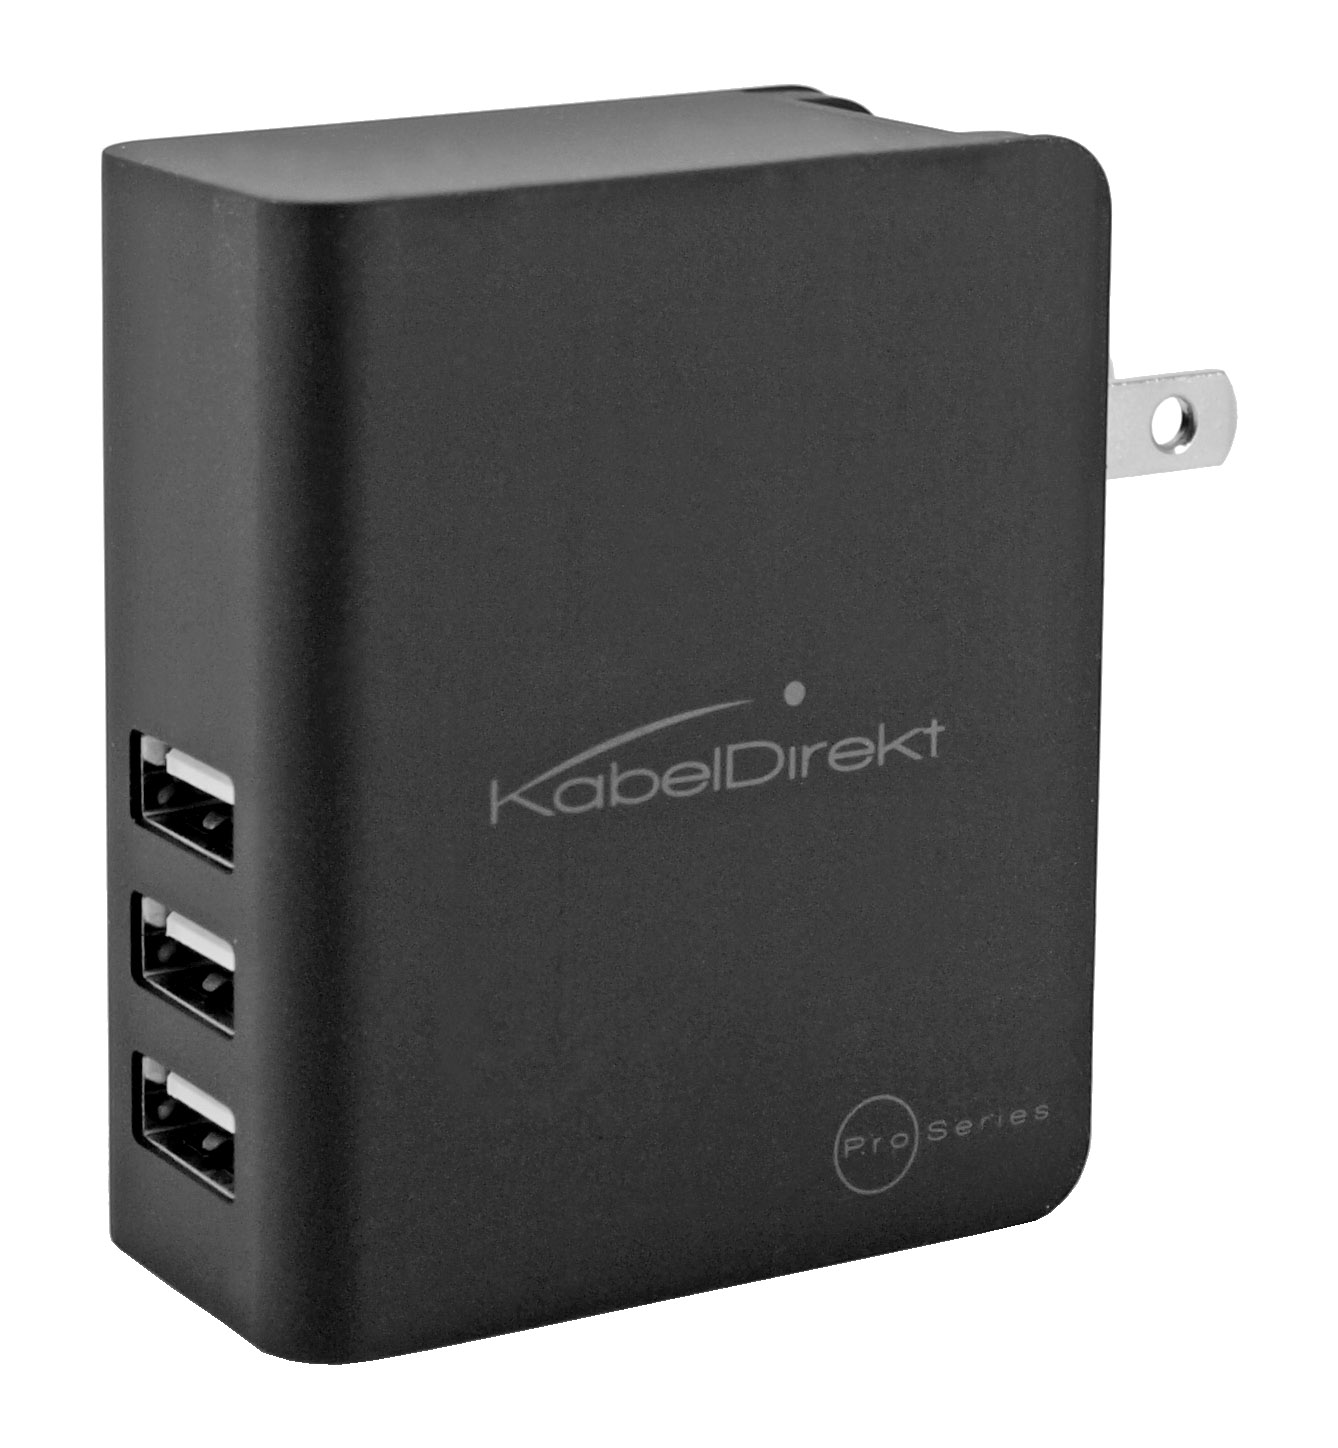 KabelDirekt 3 - USB Port Wall Charger